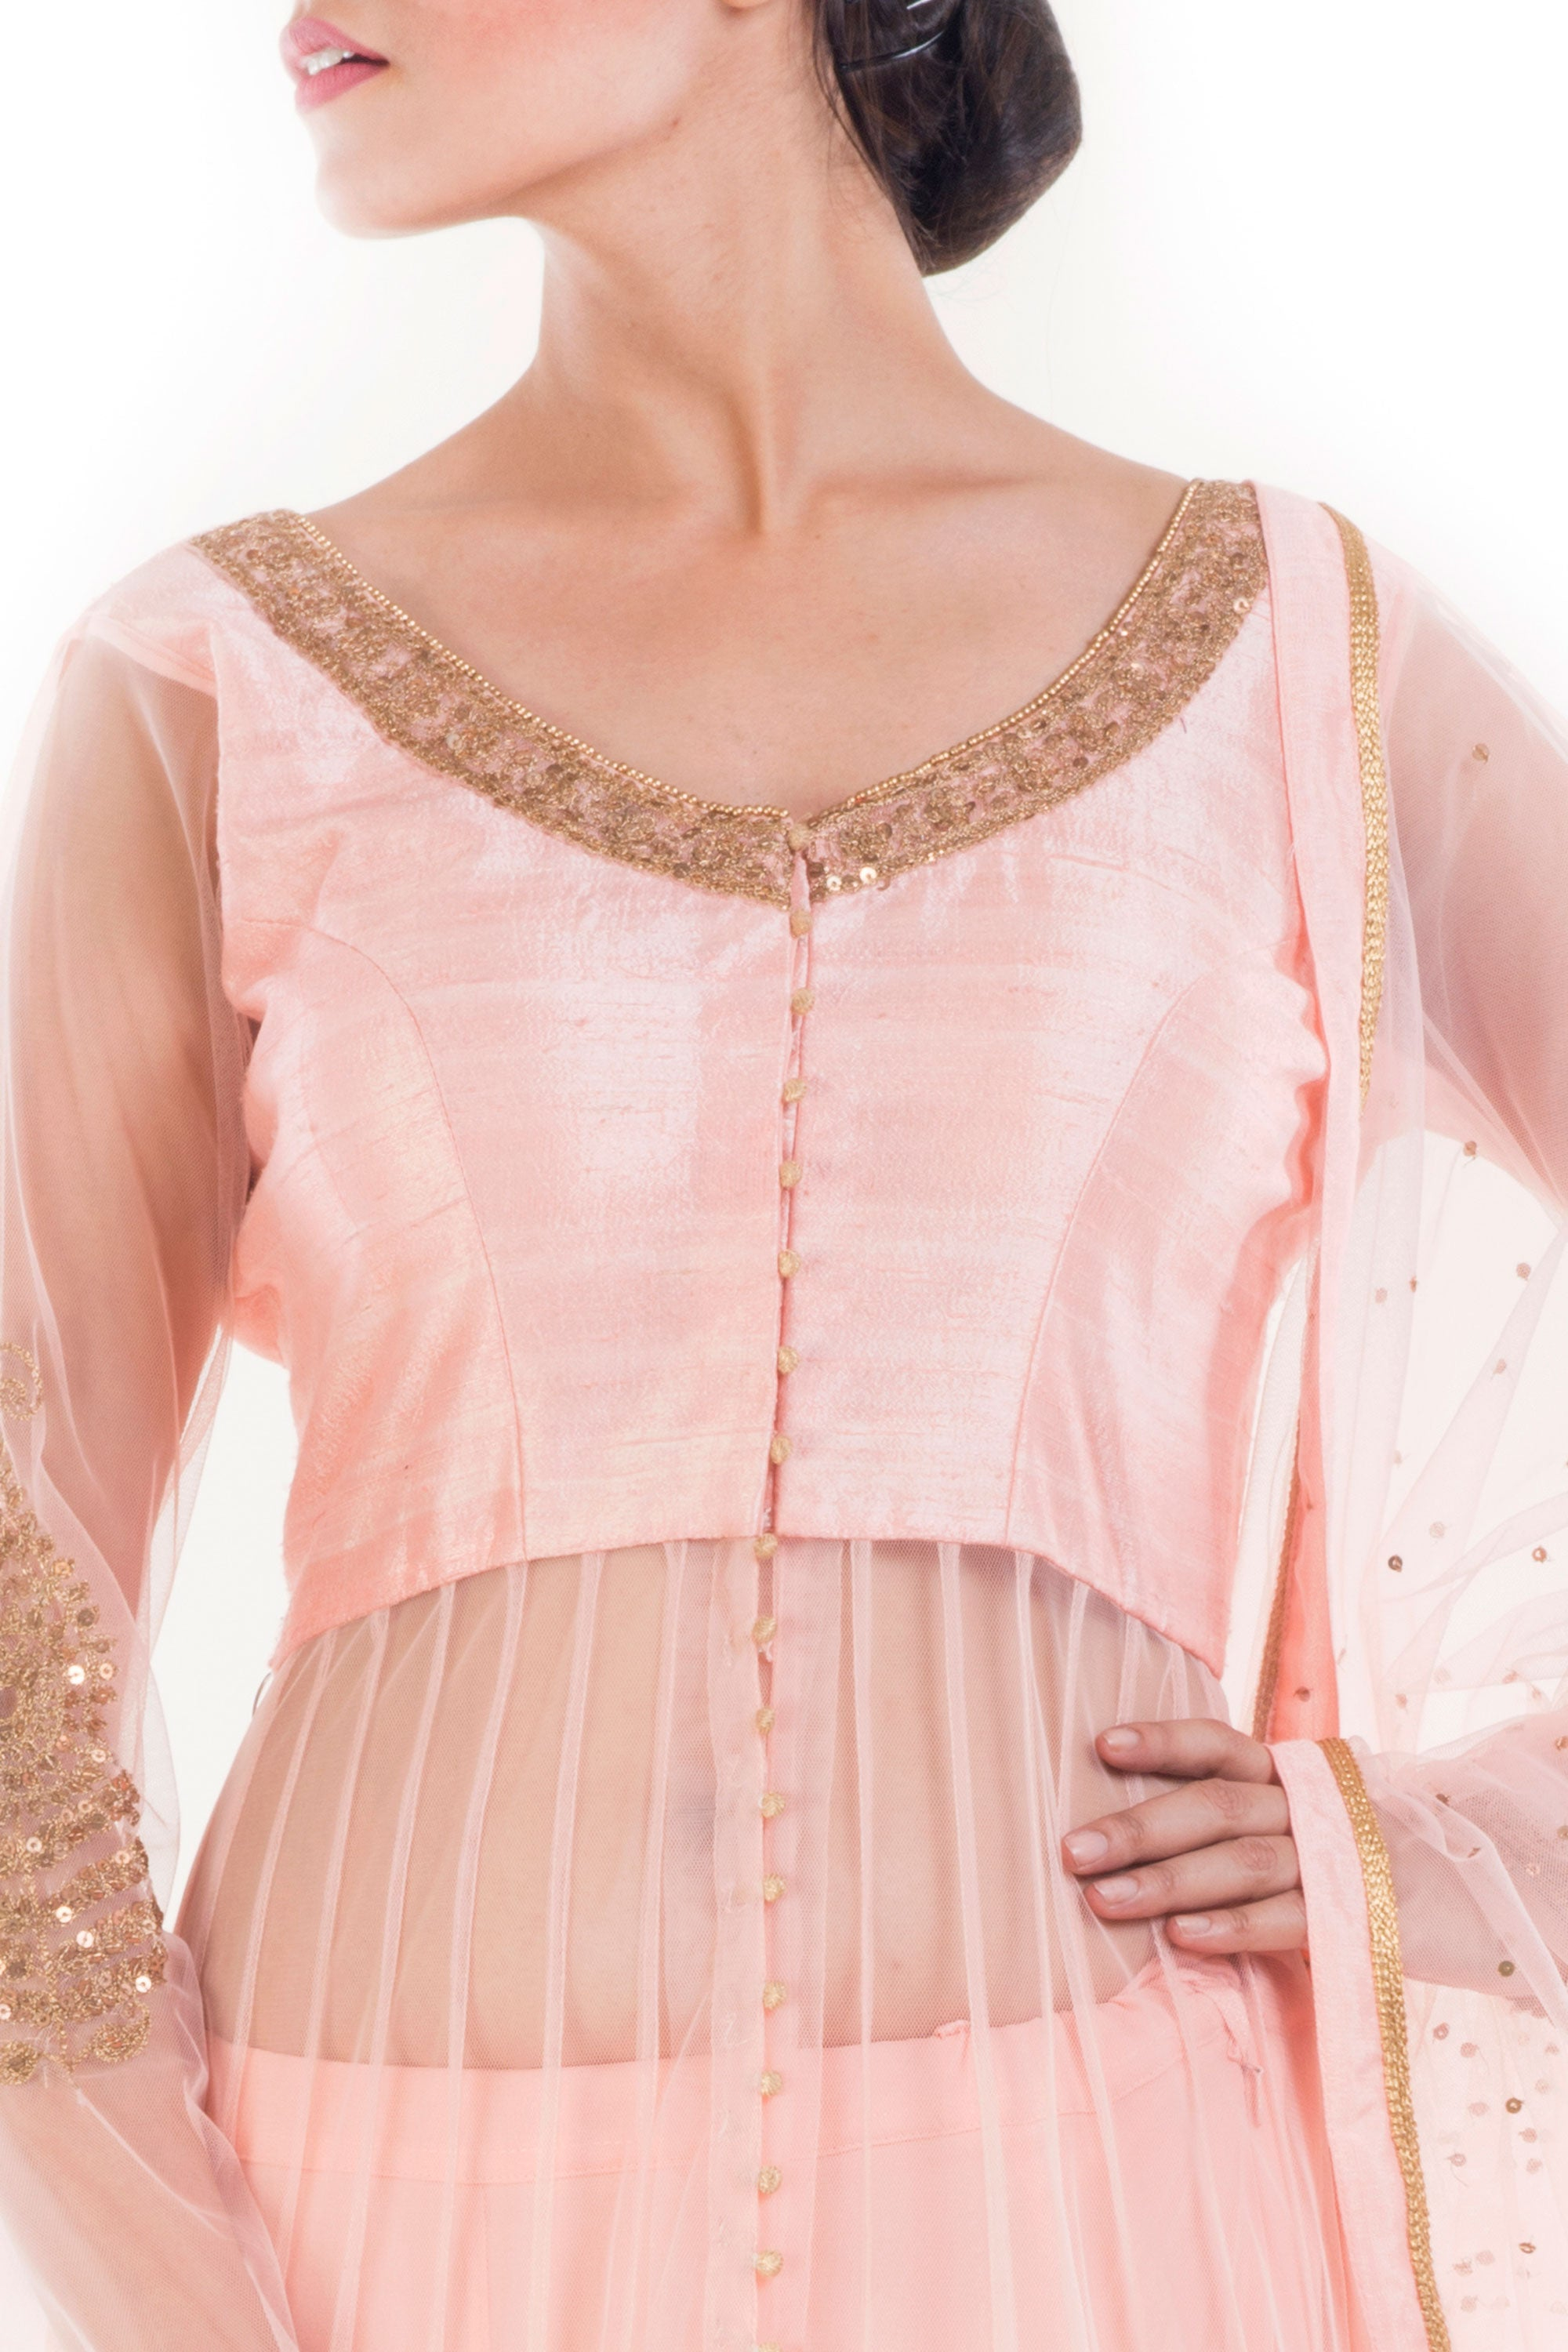 Peach & Golden Embellished Jacket Lehenga Set Closeup